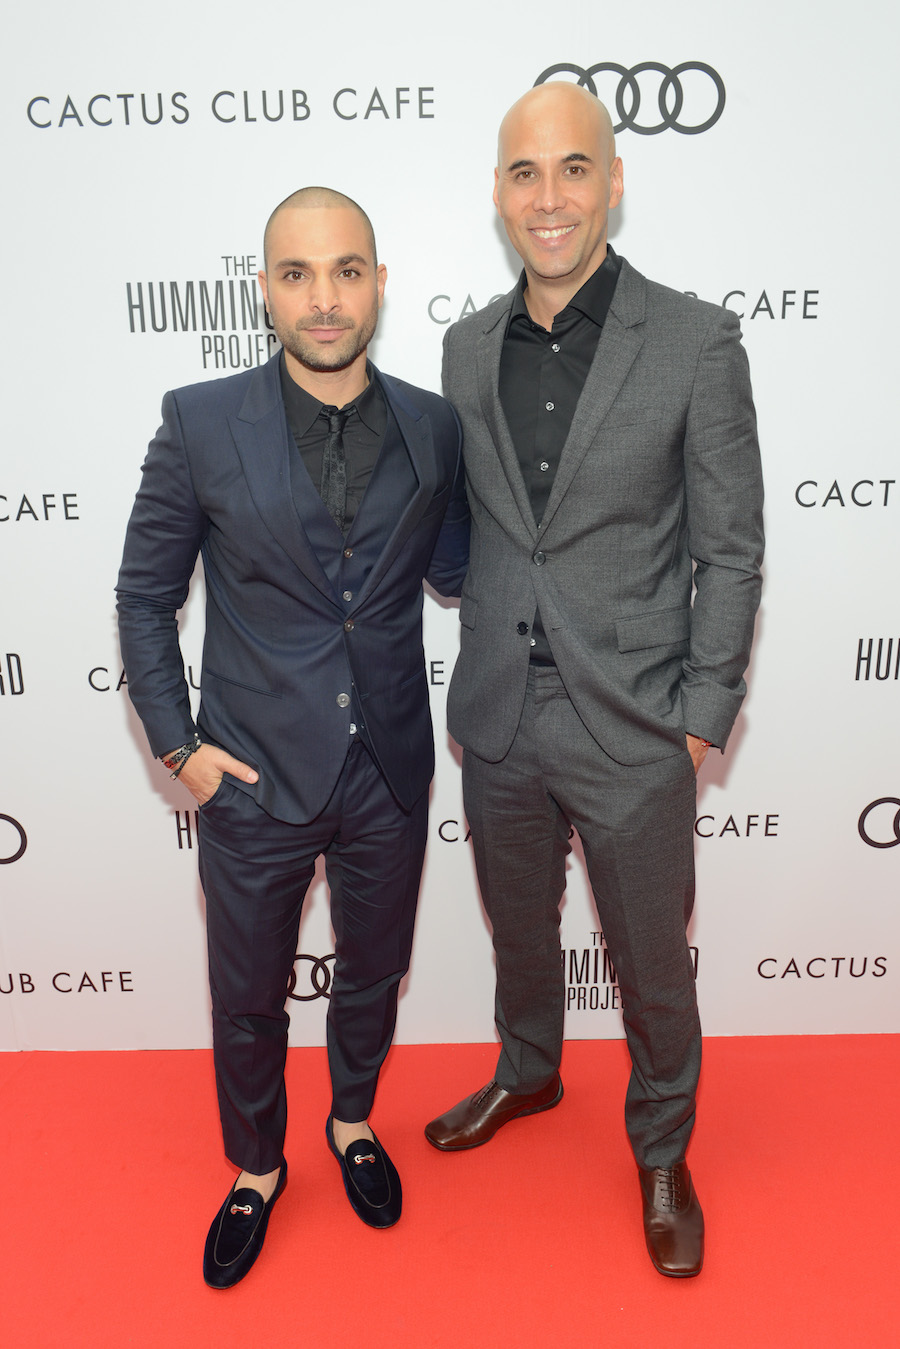 Michael Mando and Kim Nguyen at 'The Hummingbird Project' premiere party hosted by Cactus Club Cafe at First Canadian Place. (Photo: George Pimentel/Getty Images for Cactus Club Cafe) | View the VIBE